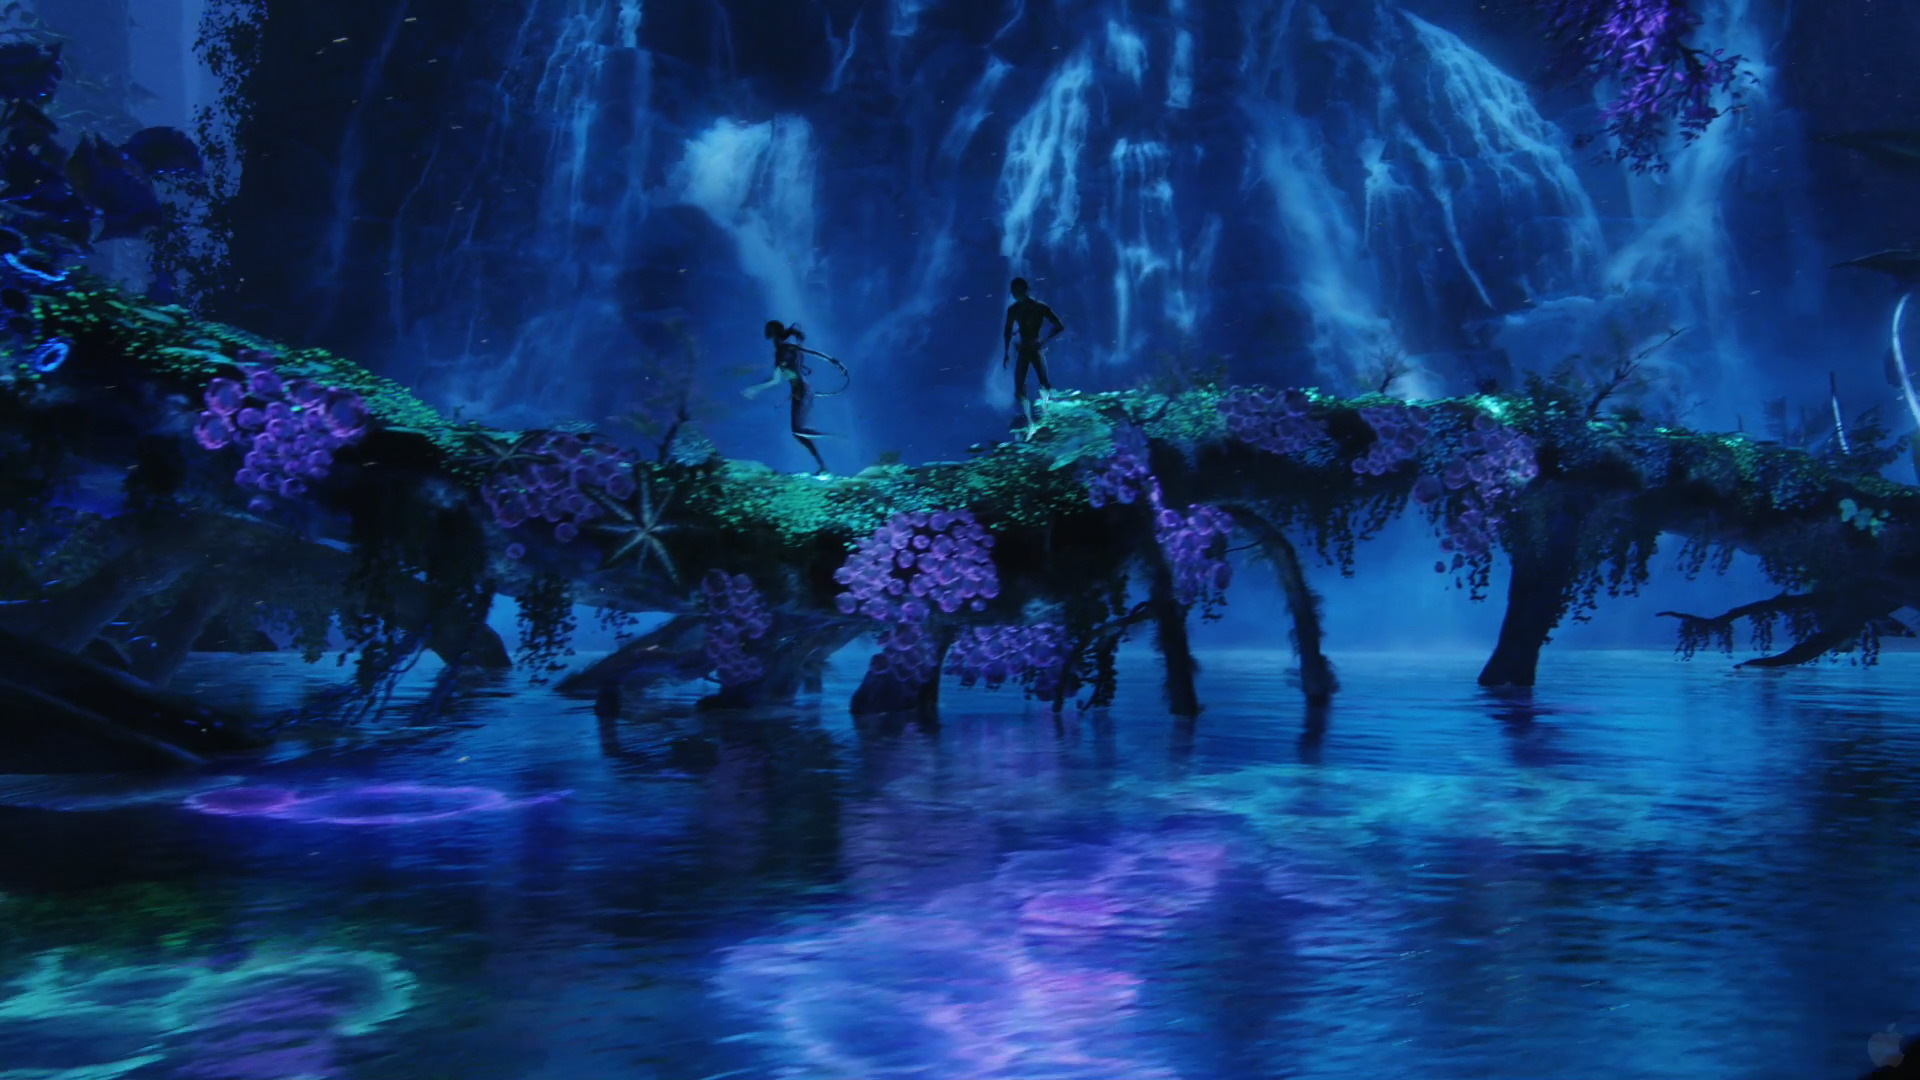 from Avatar wallpaper   Click picture for high resolution HD wallpaper 1920x1080